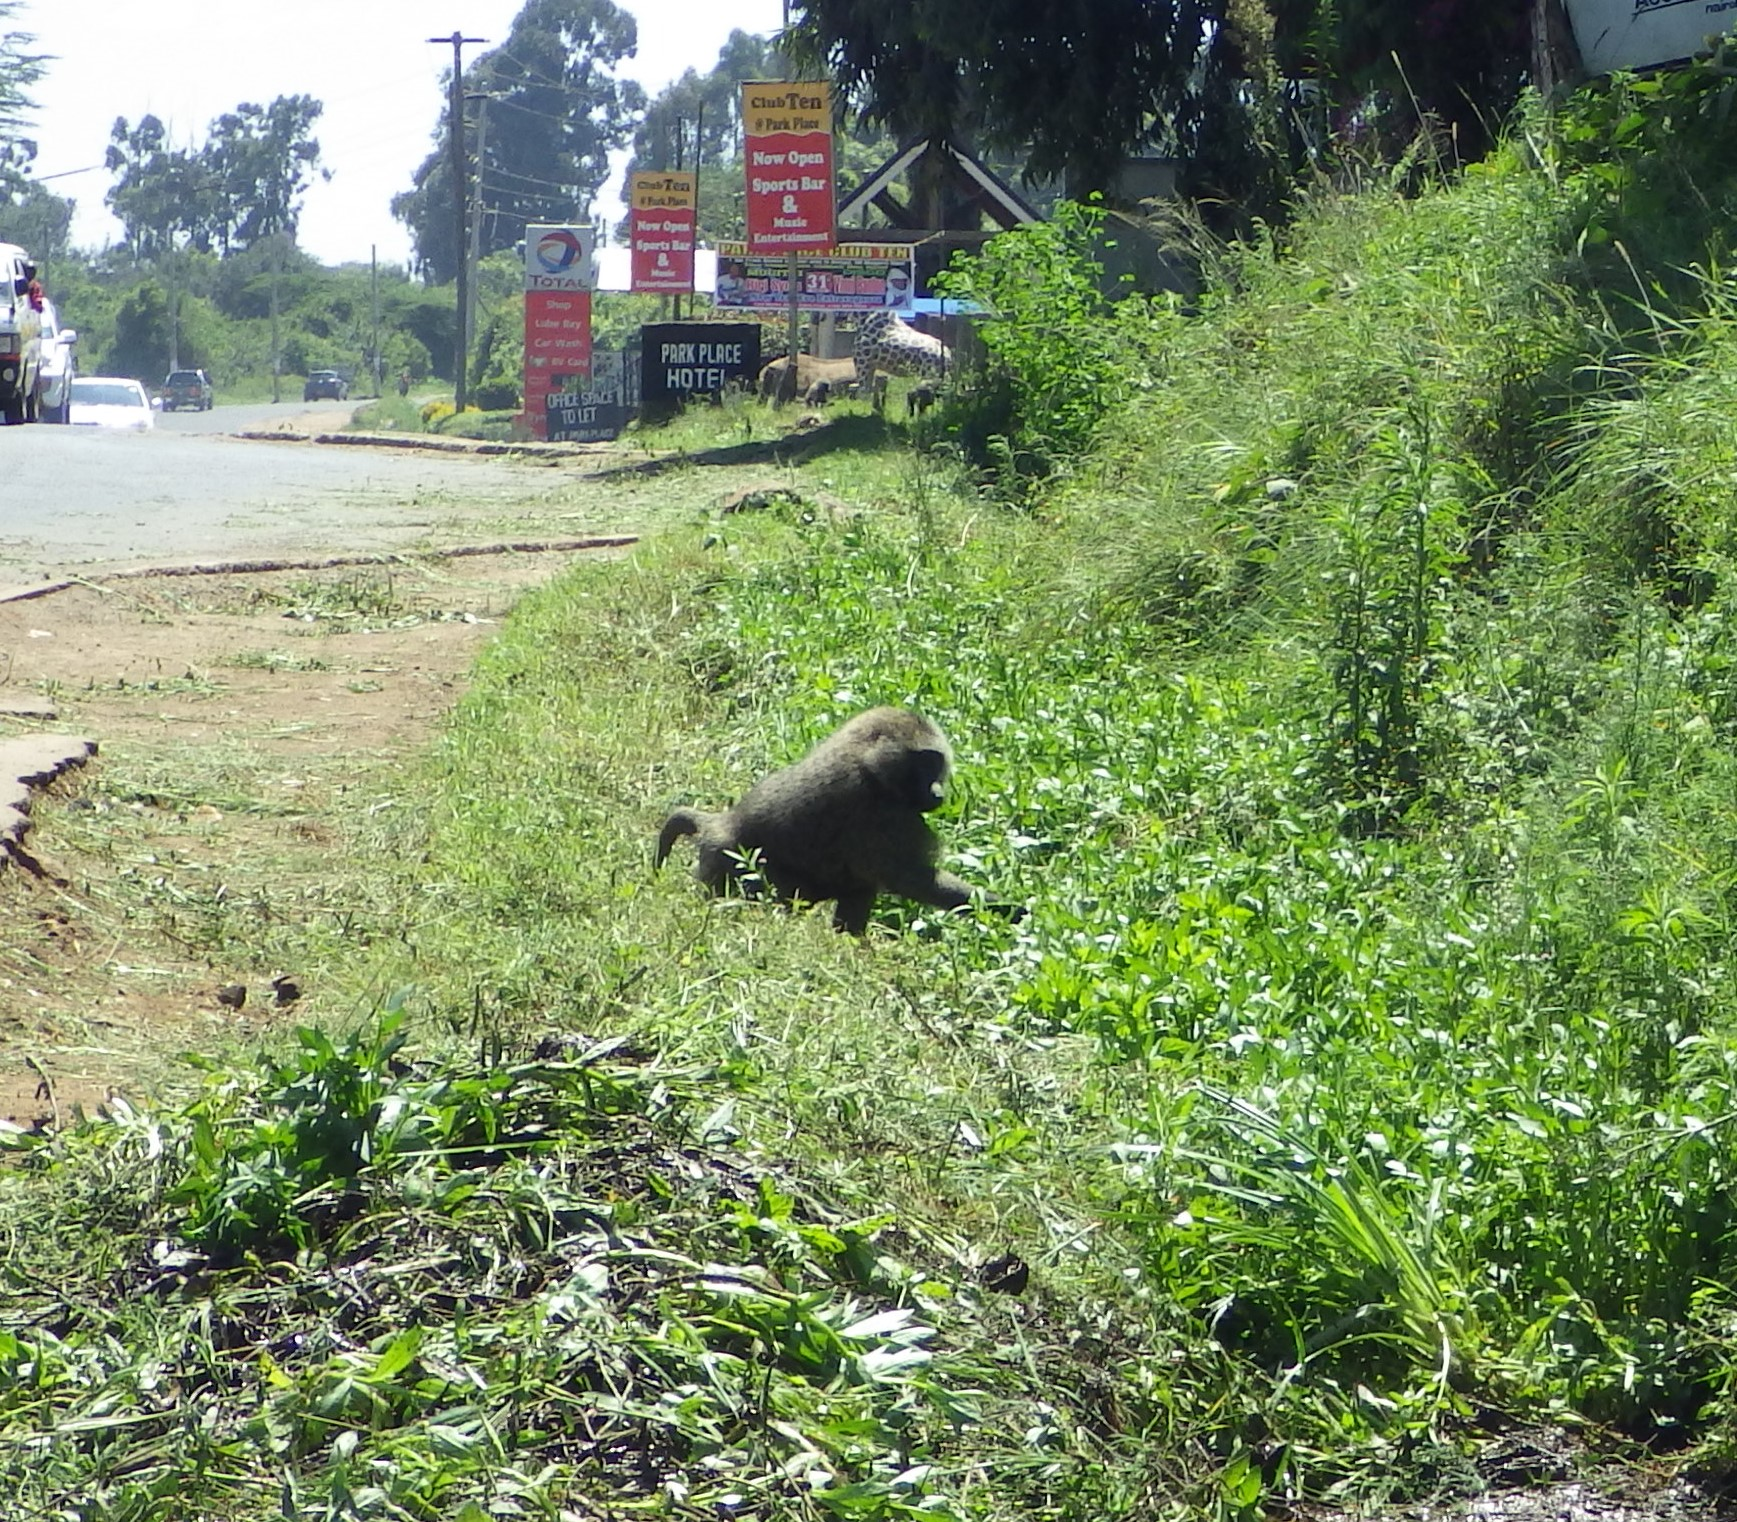 I figured this male baboon did not want me intruding so I yielded right of way.